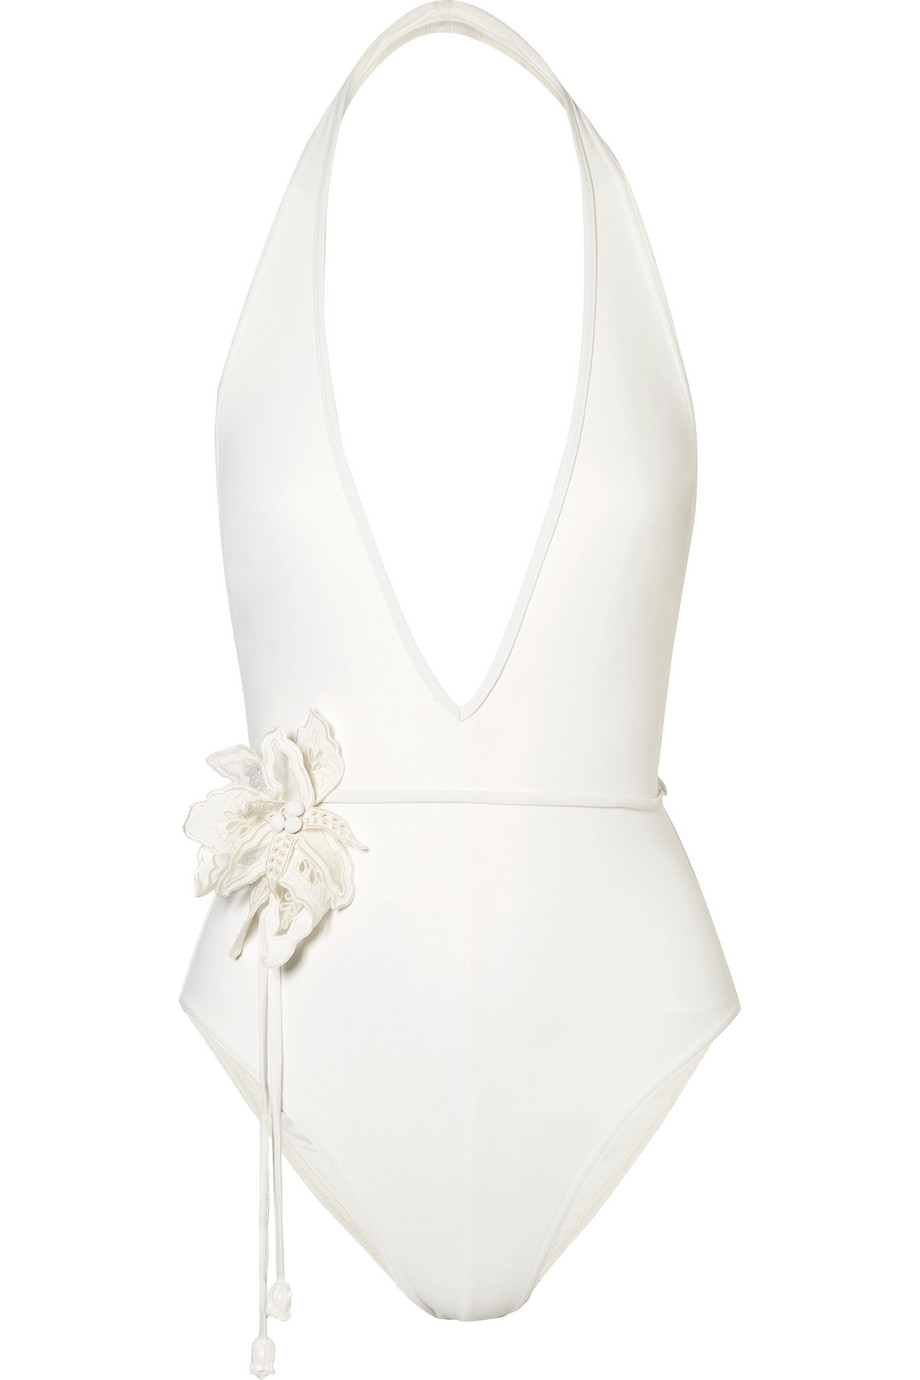 Zimmermann Corsage White Swimsuit